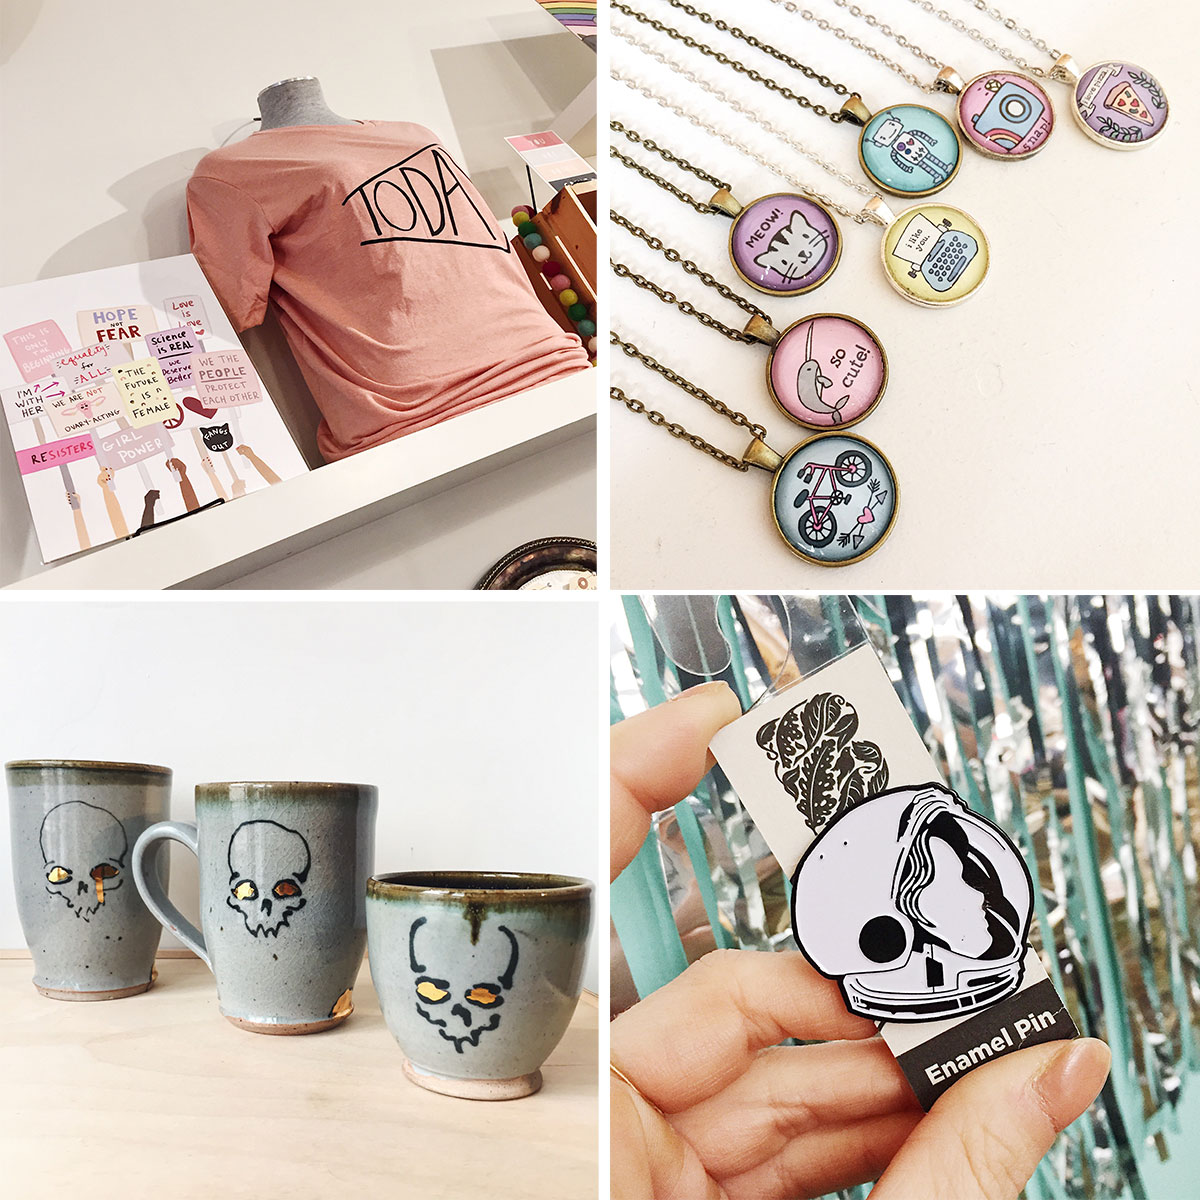 ICYMI January 11 t-shirts, prints, necklaces, skull mugs, and pins at Homespun: Modern Handmade